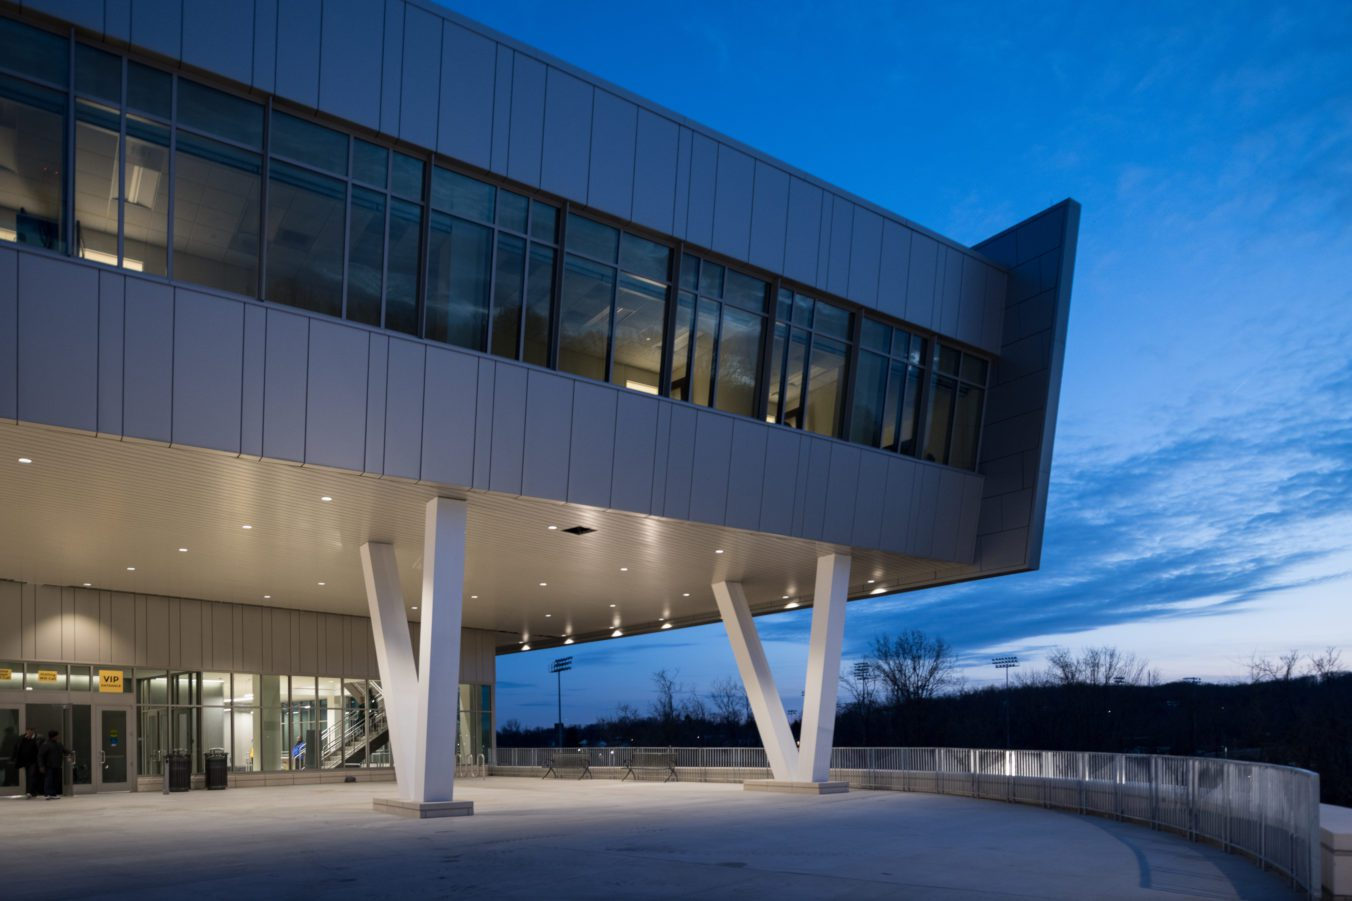 Exterior corner of the event center and sports arena